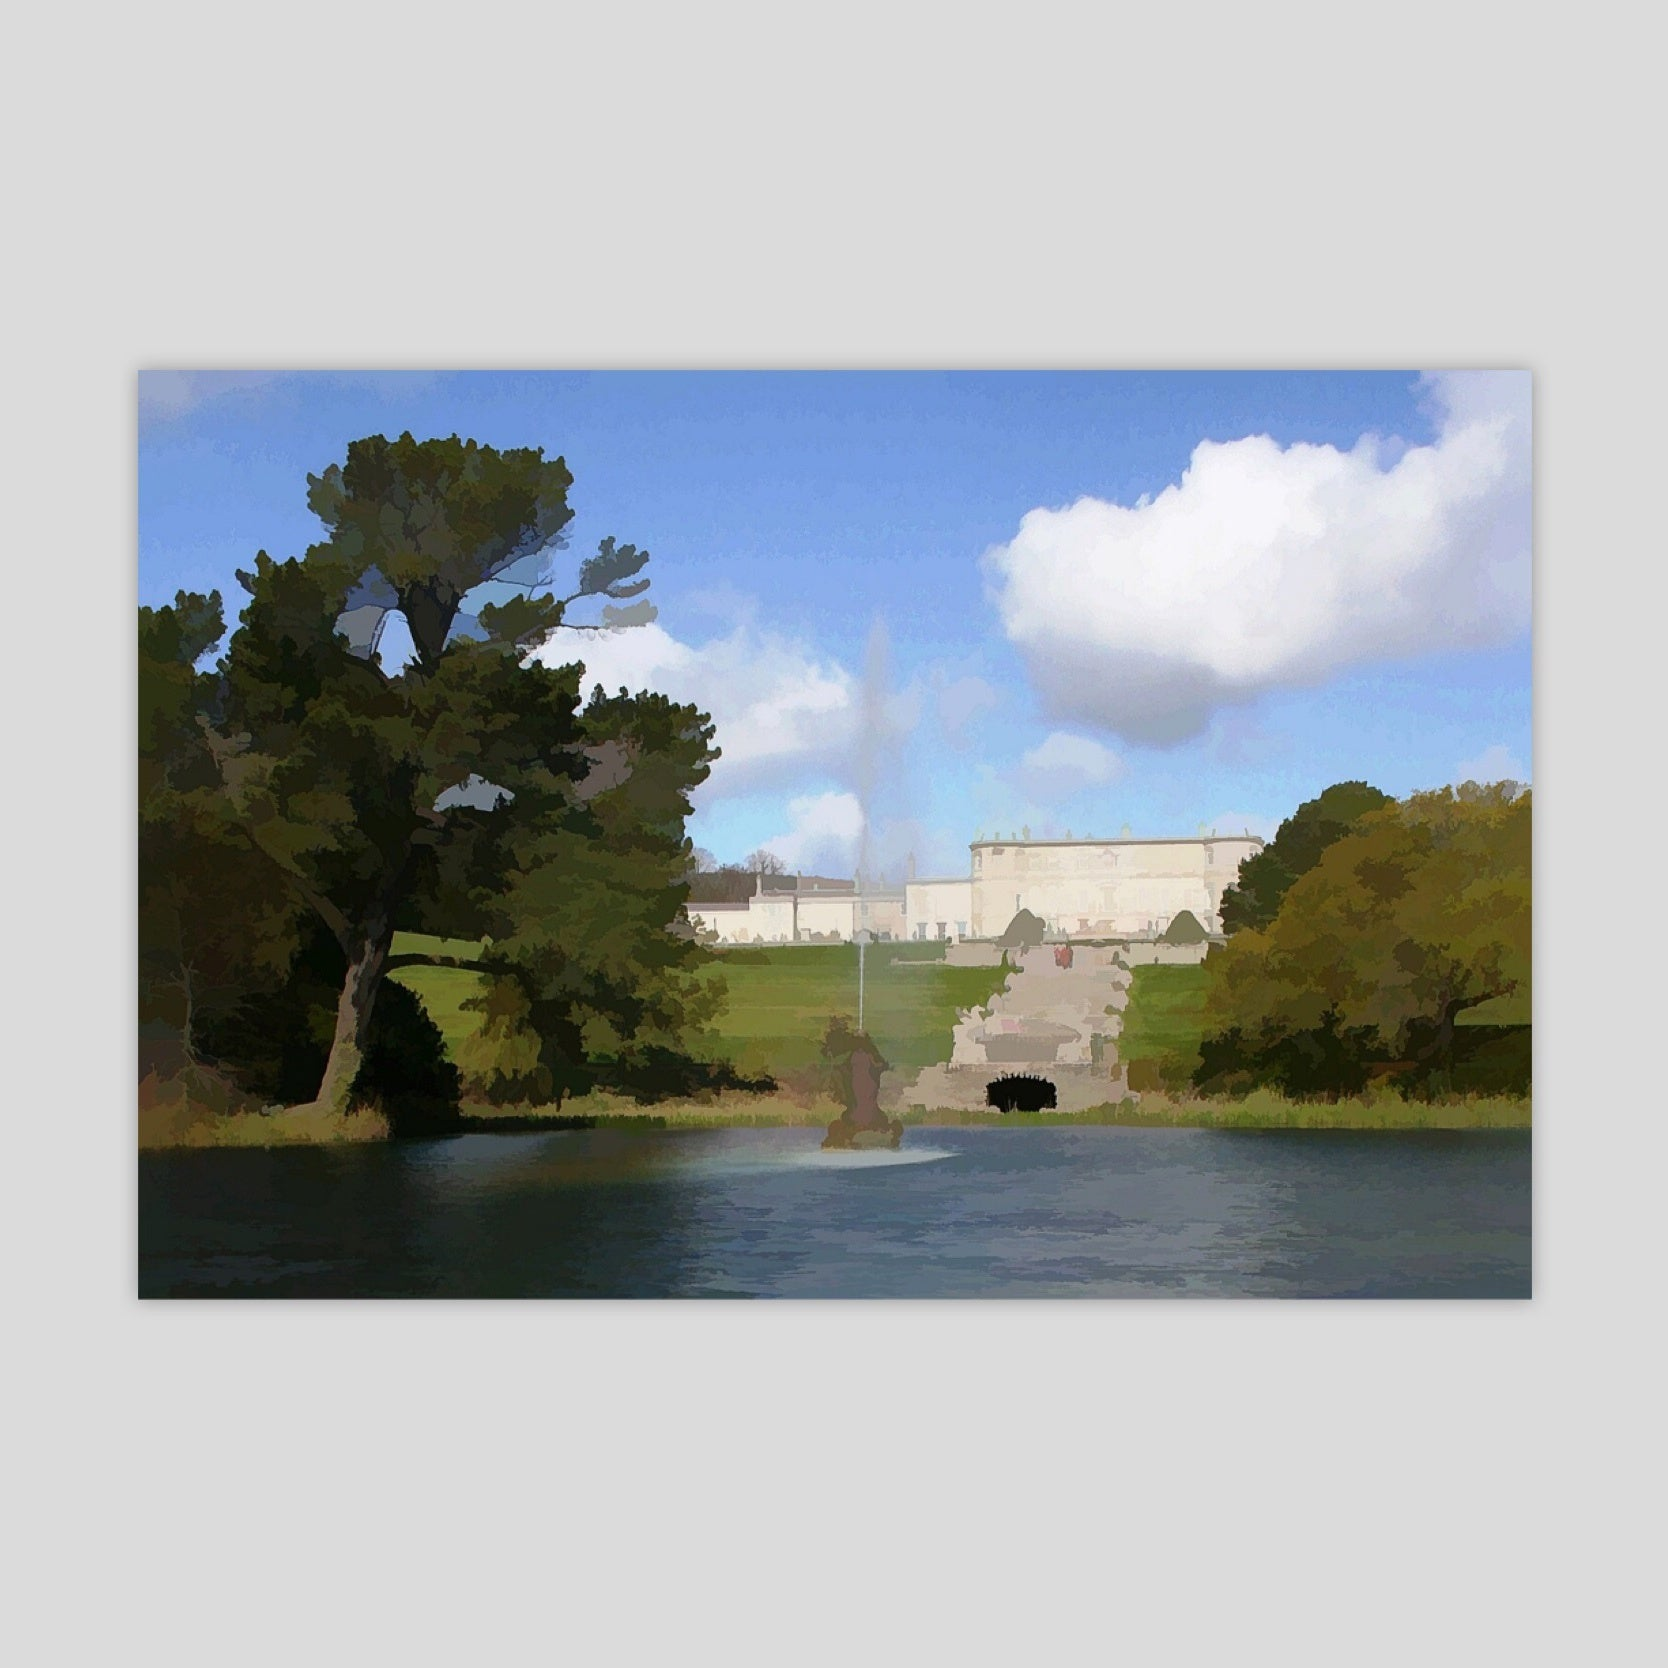 Powerscourt House (3126R-M4)